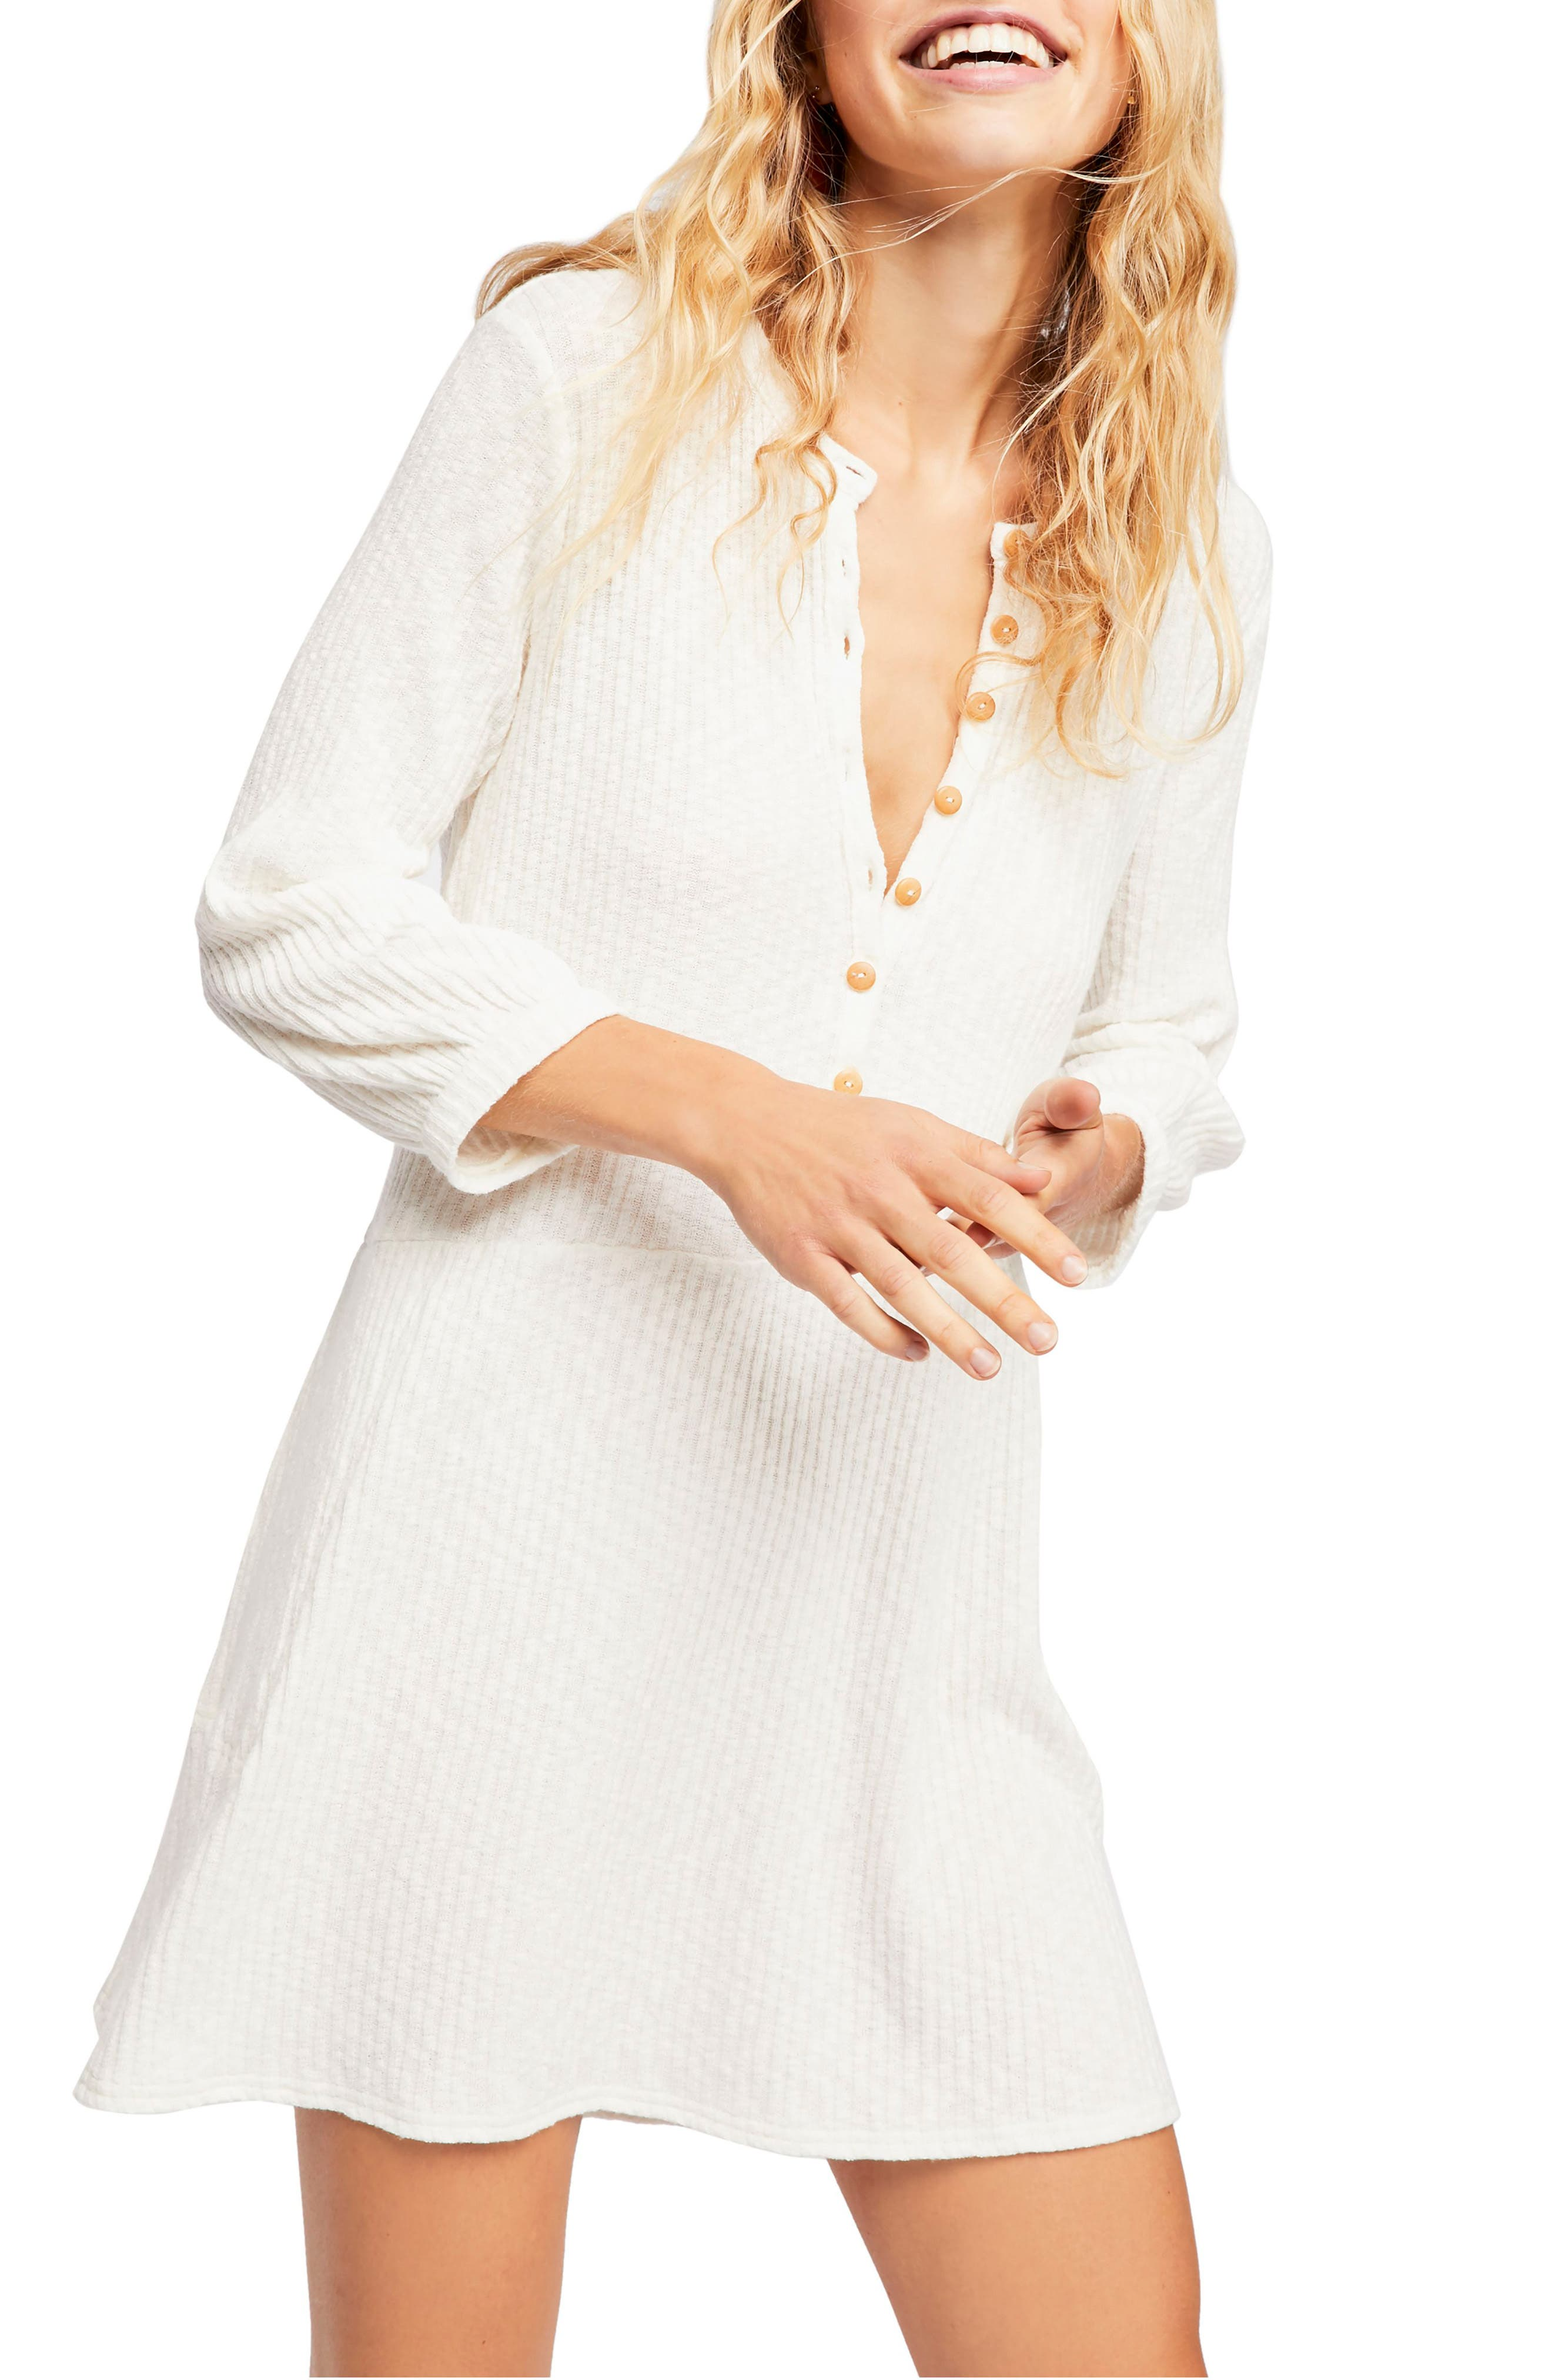 Endless Summer By Free People Blossom Stretch Cotton Dress, White